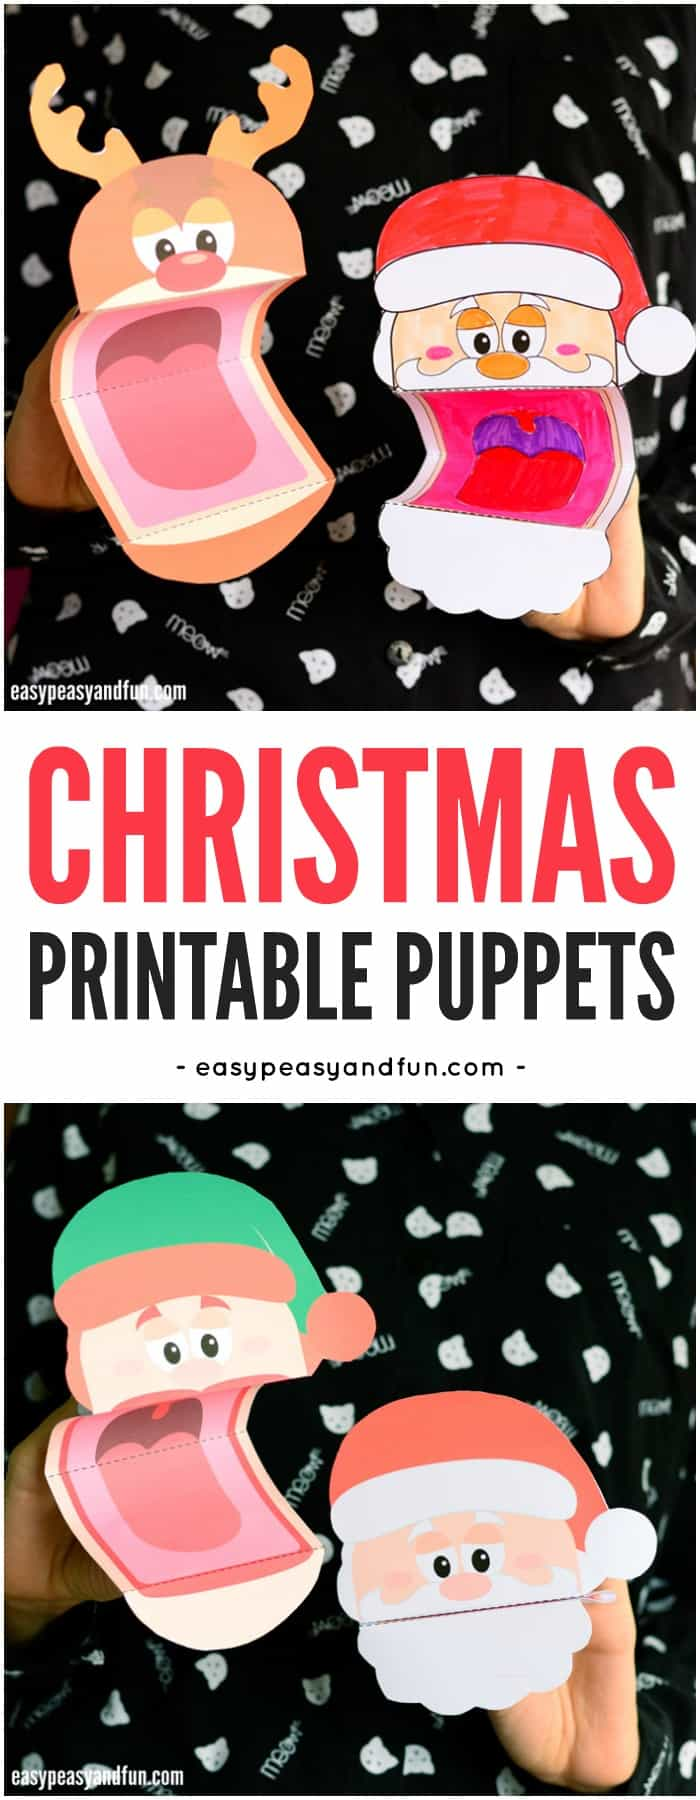 Printable Christmas Puppets Santa Elf and Reindeer